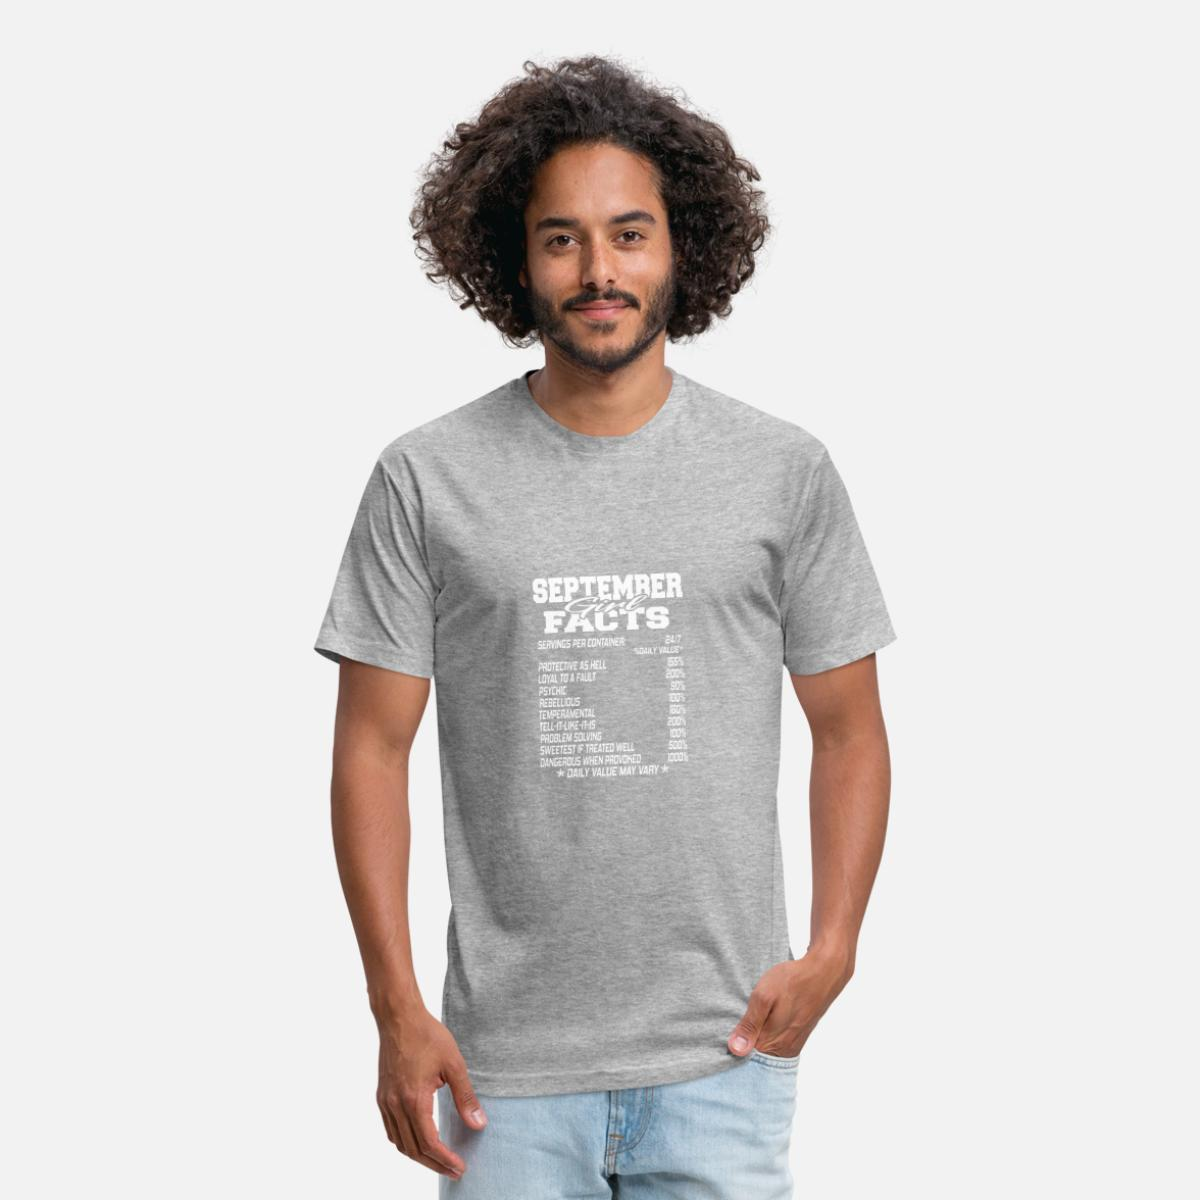 SEPTEMBER born girl funny birthmonth fact quotes Fitted Cotton/Poly T-Shirt  by Next Level - heather gray